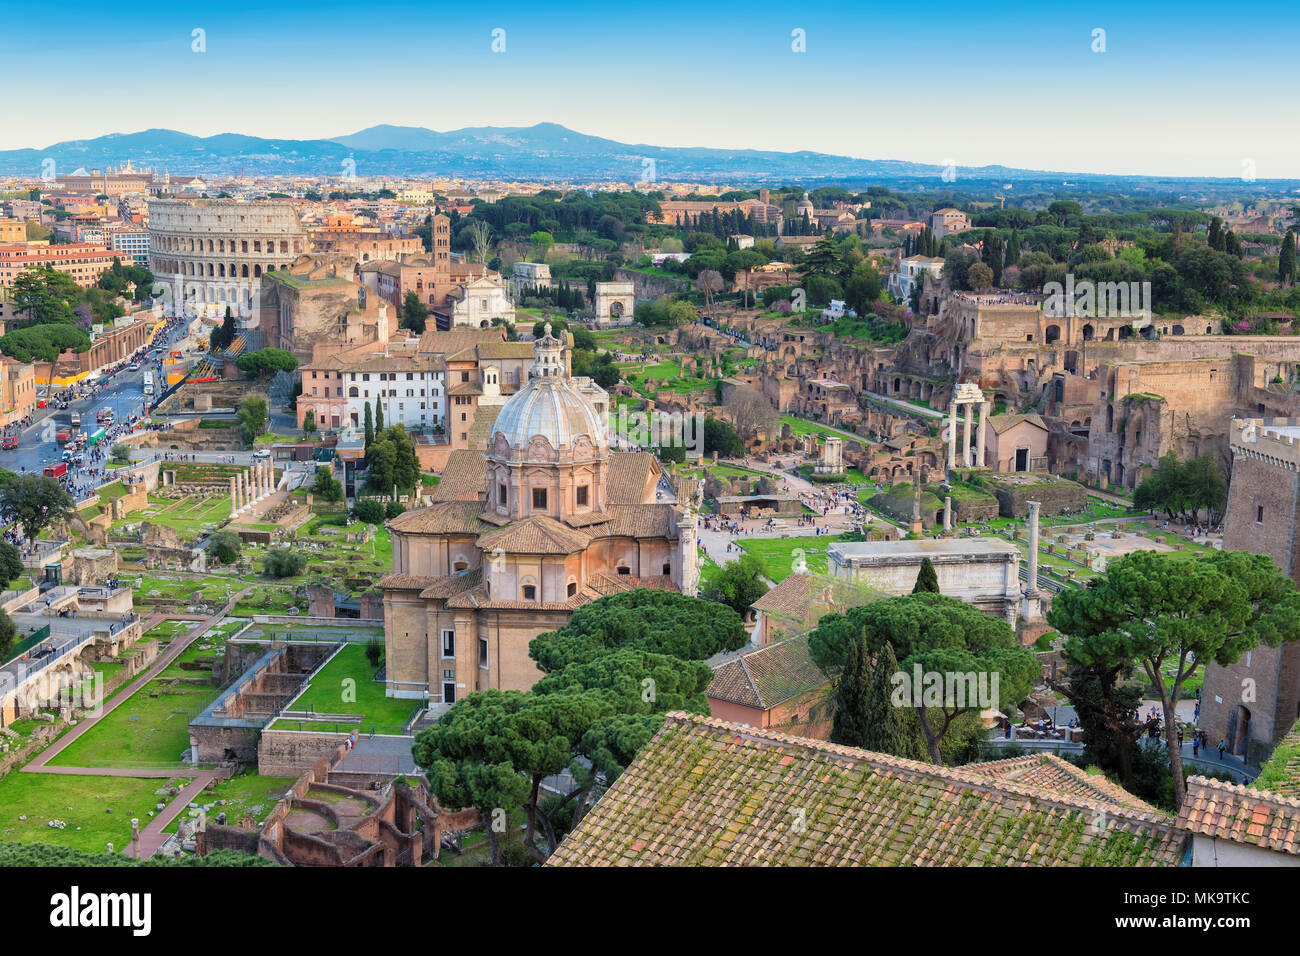 Aerial view of Roman Forum and Colosseum in Rome, Italy. - Stock Image